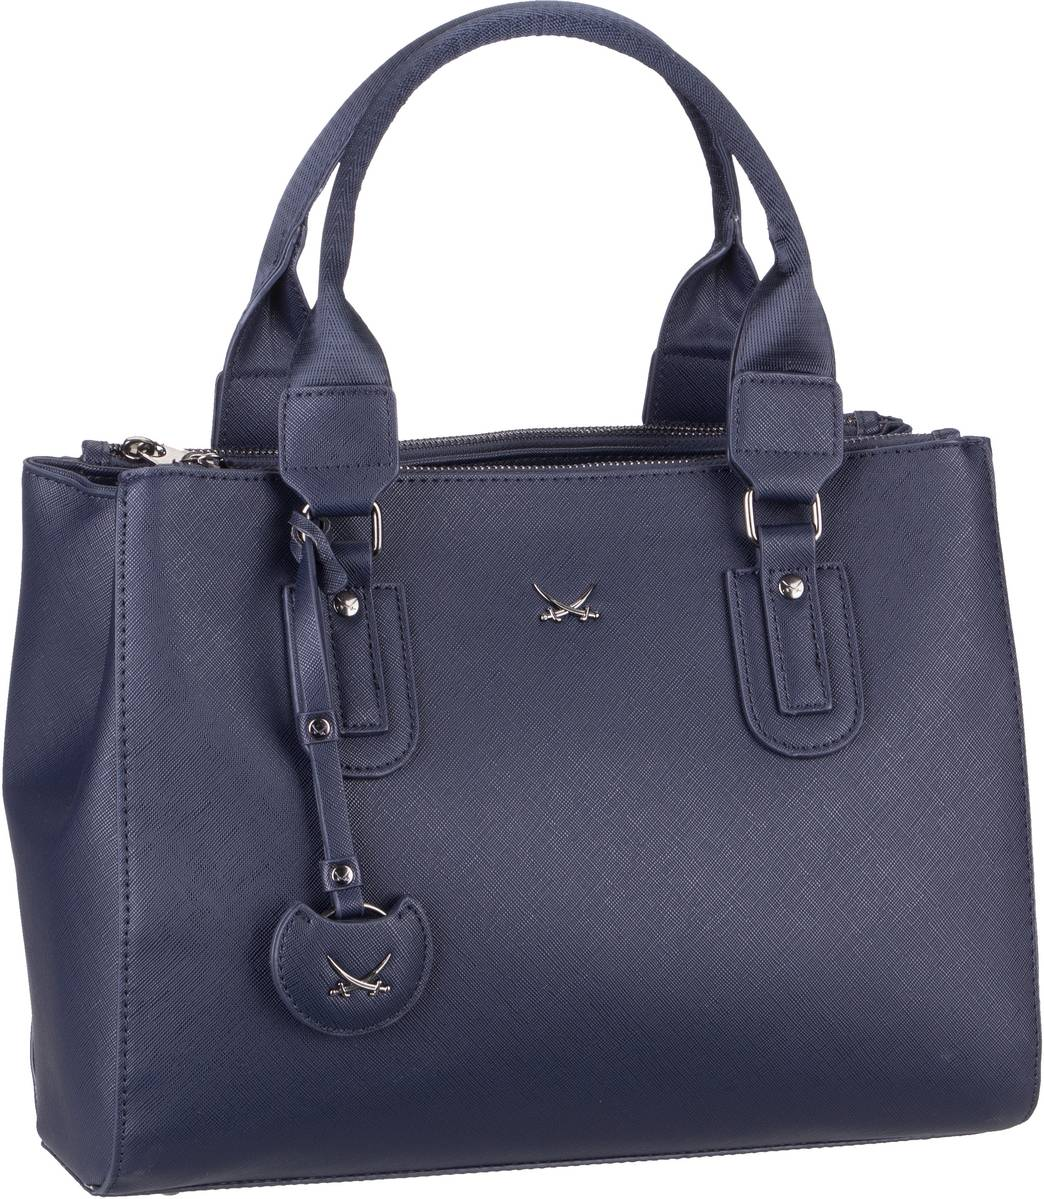 Handtasche Zip Bag 1330 Midnight Blue